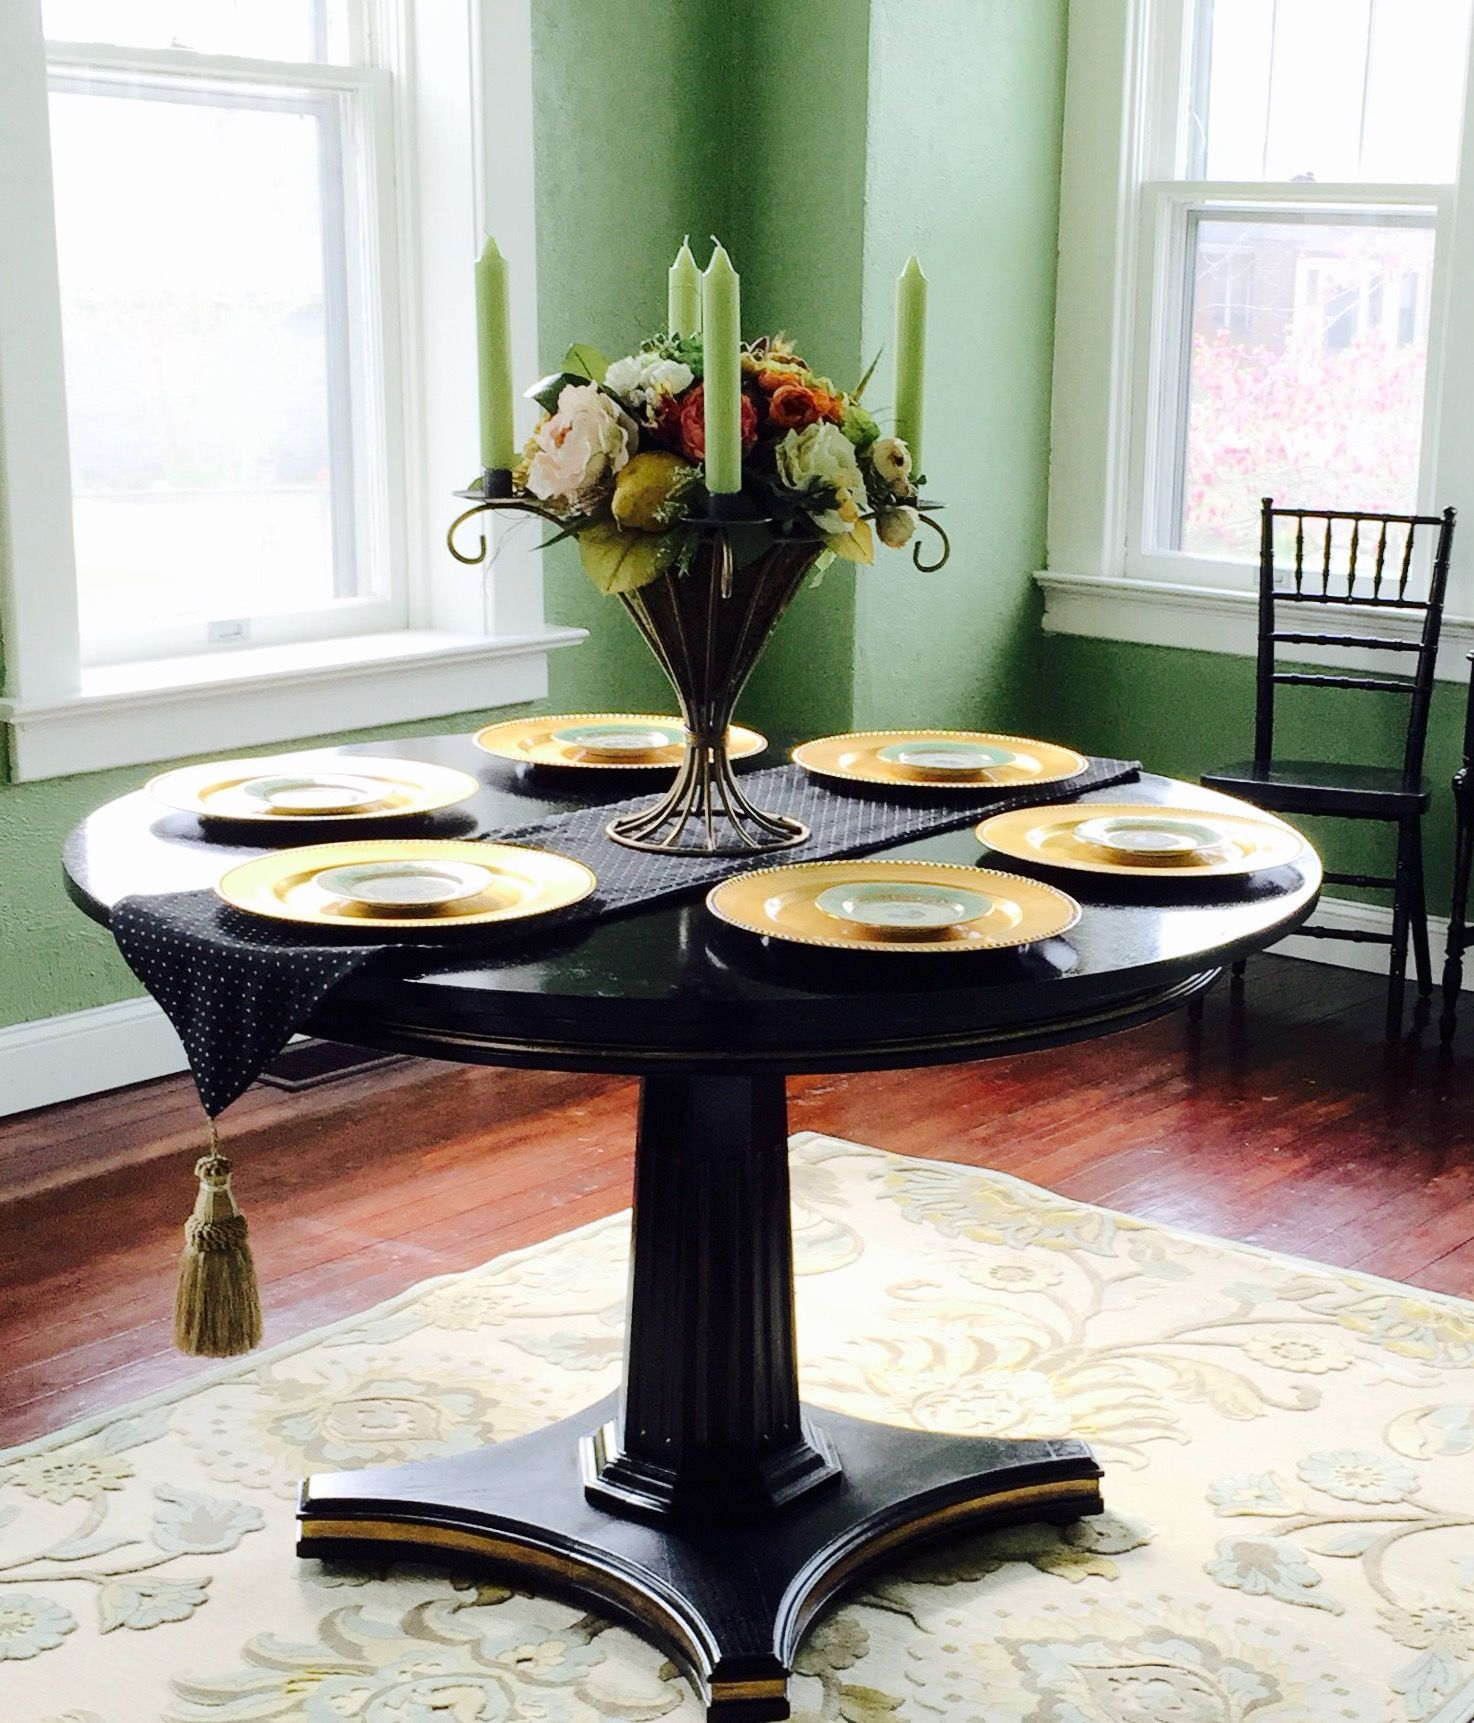 Home Staging Dining Room Table: Pin By Marifran King On Staging